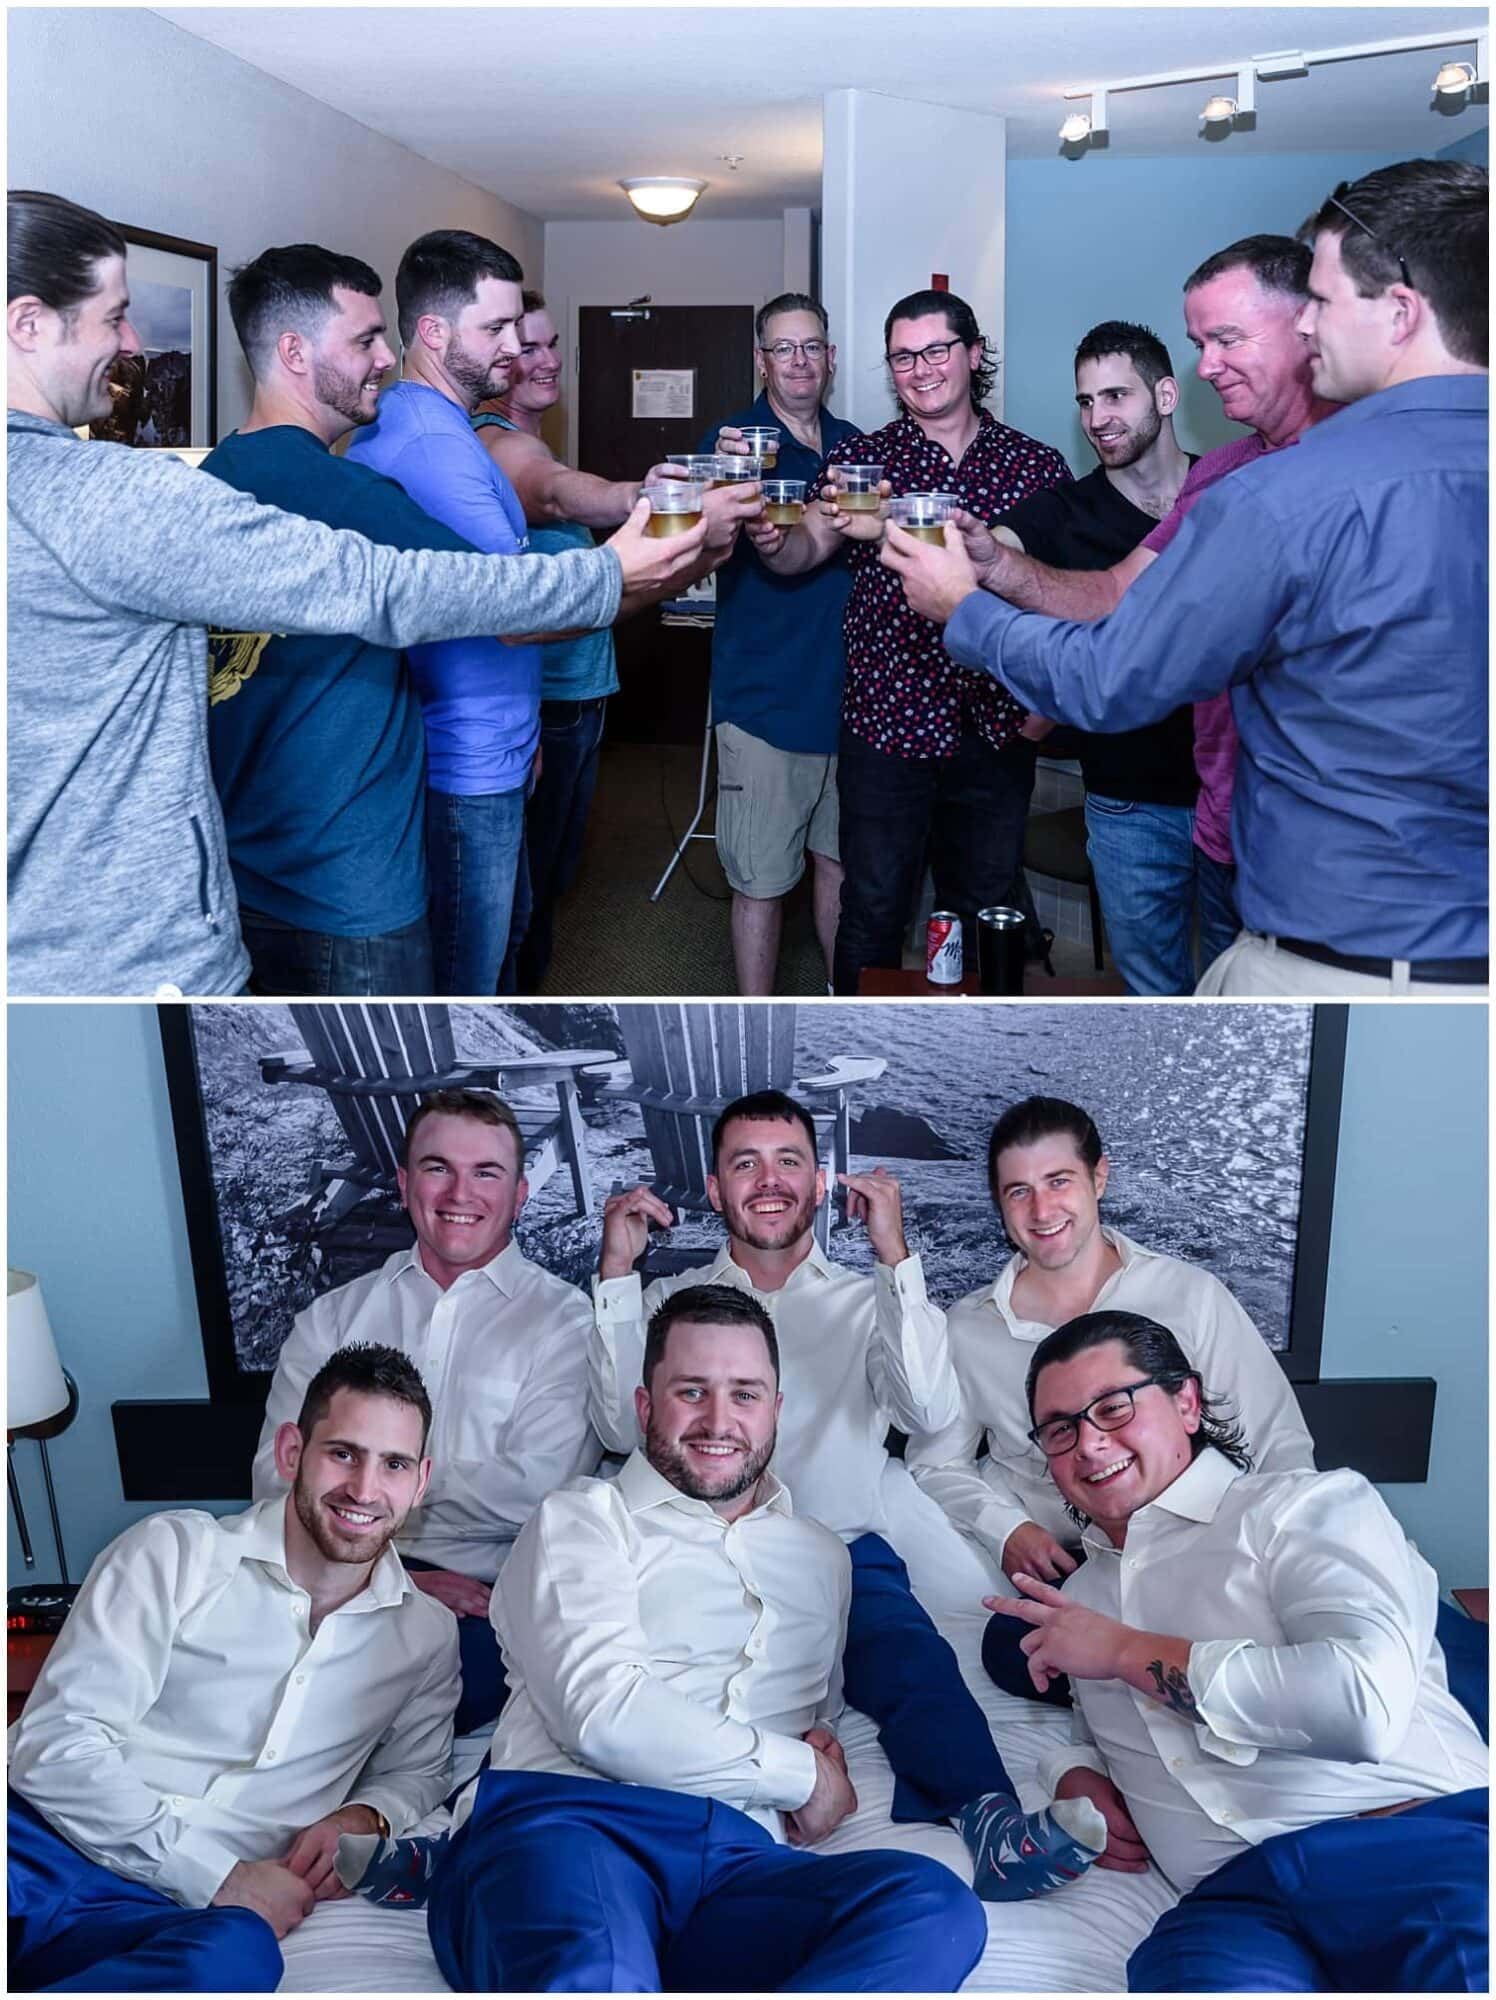 The groom with his groomsmen during wedding prep at the Super 8 hotel in Windsor, NS.